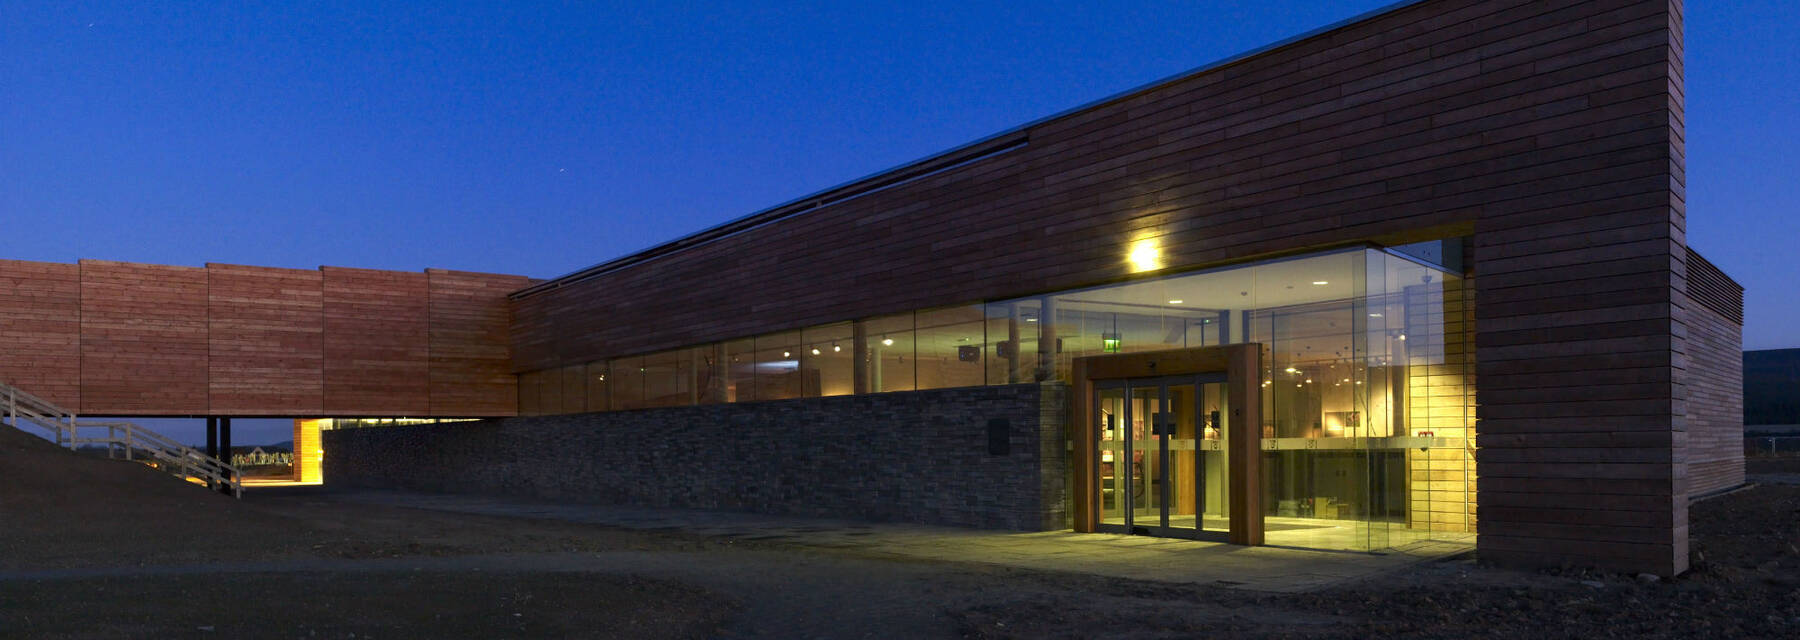 Culloden Visitor Centre at night